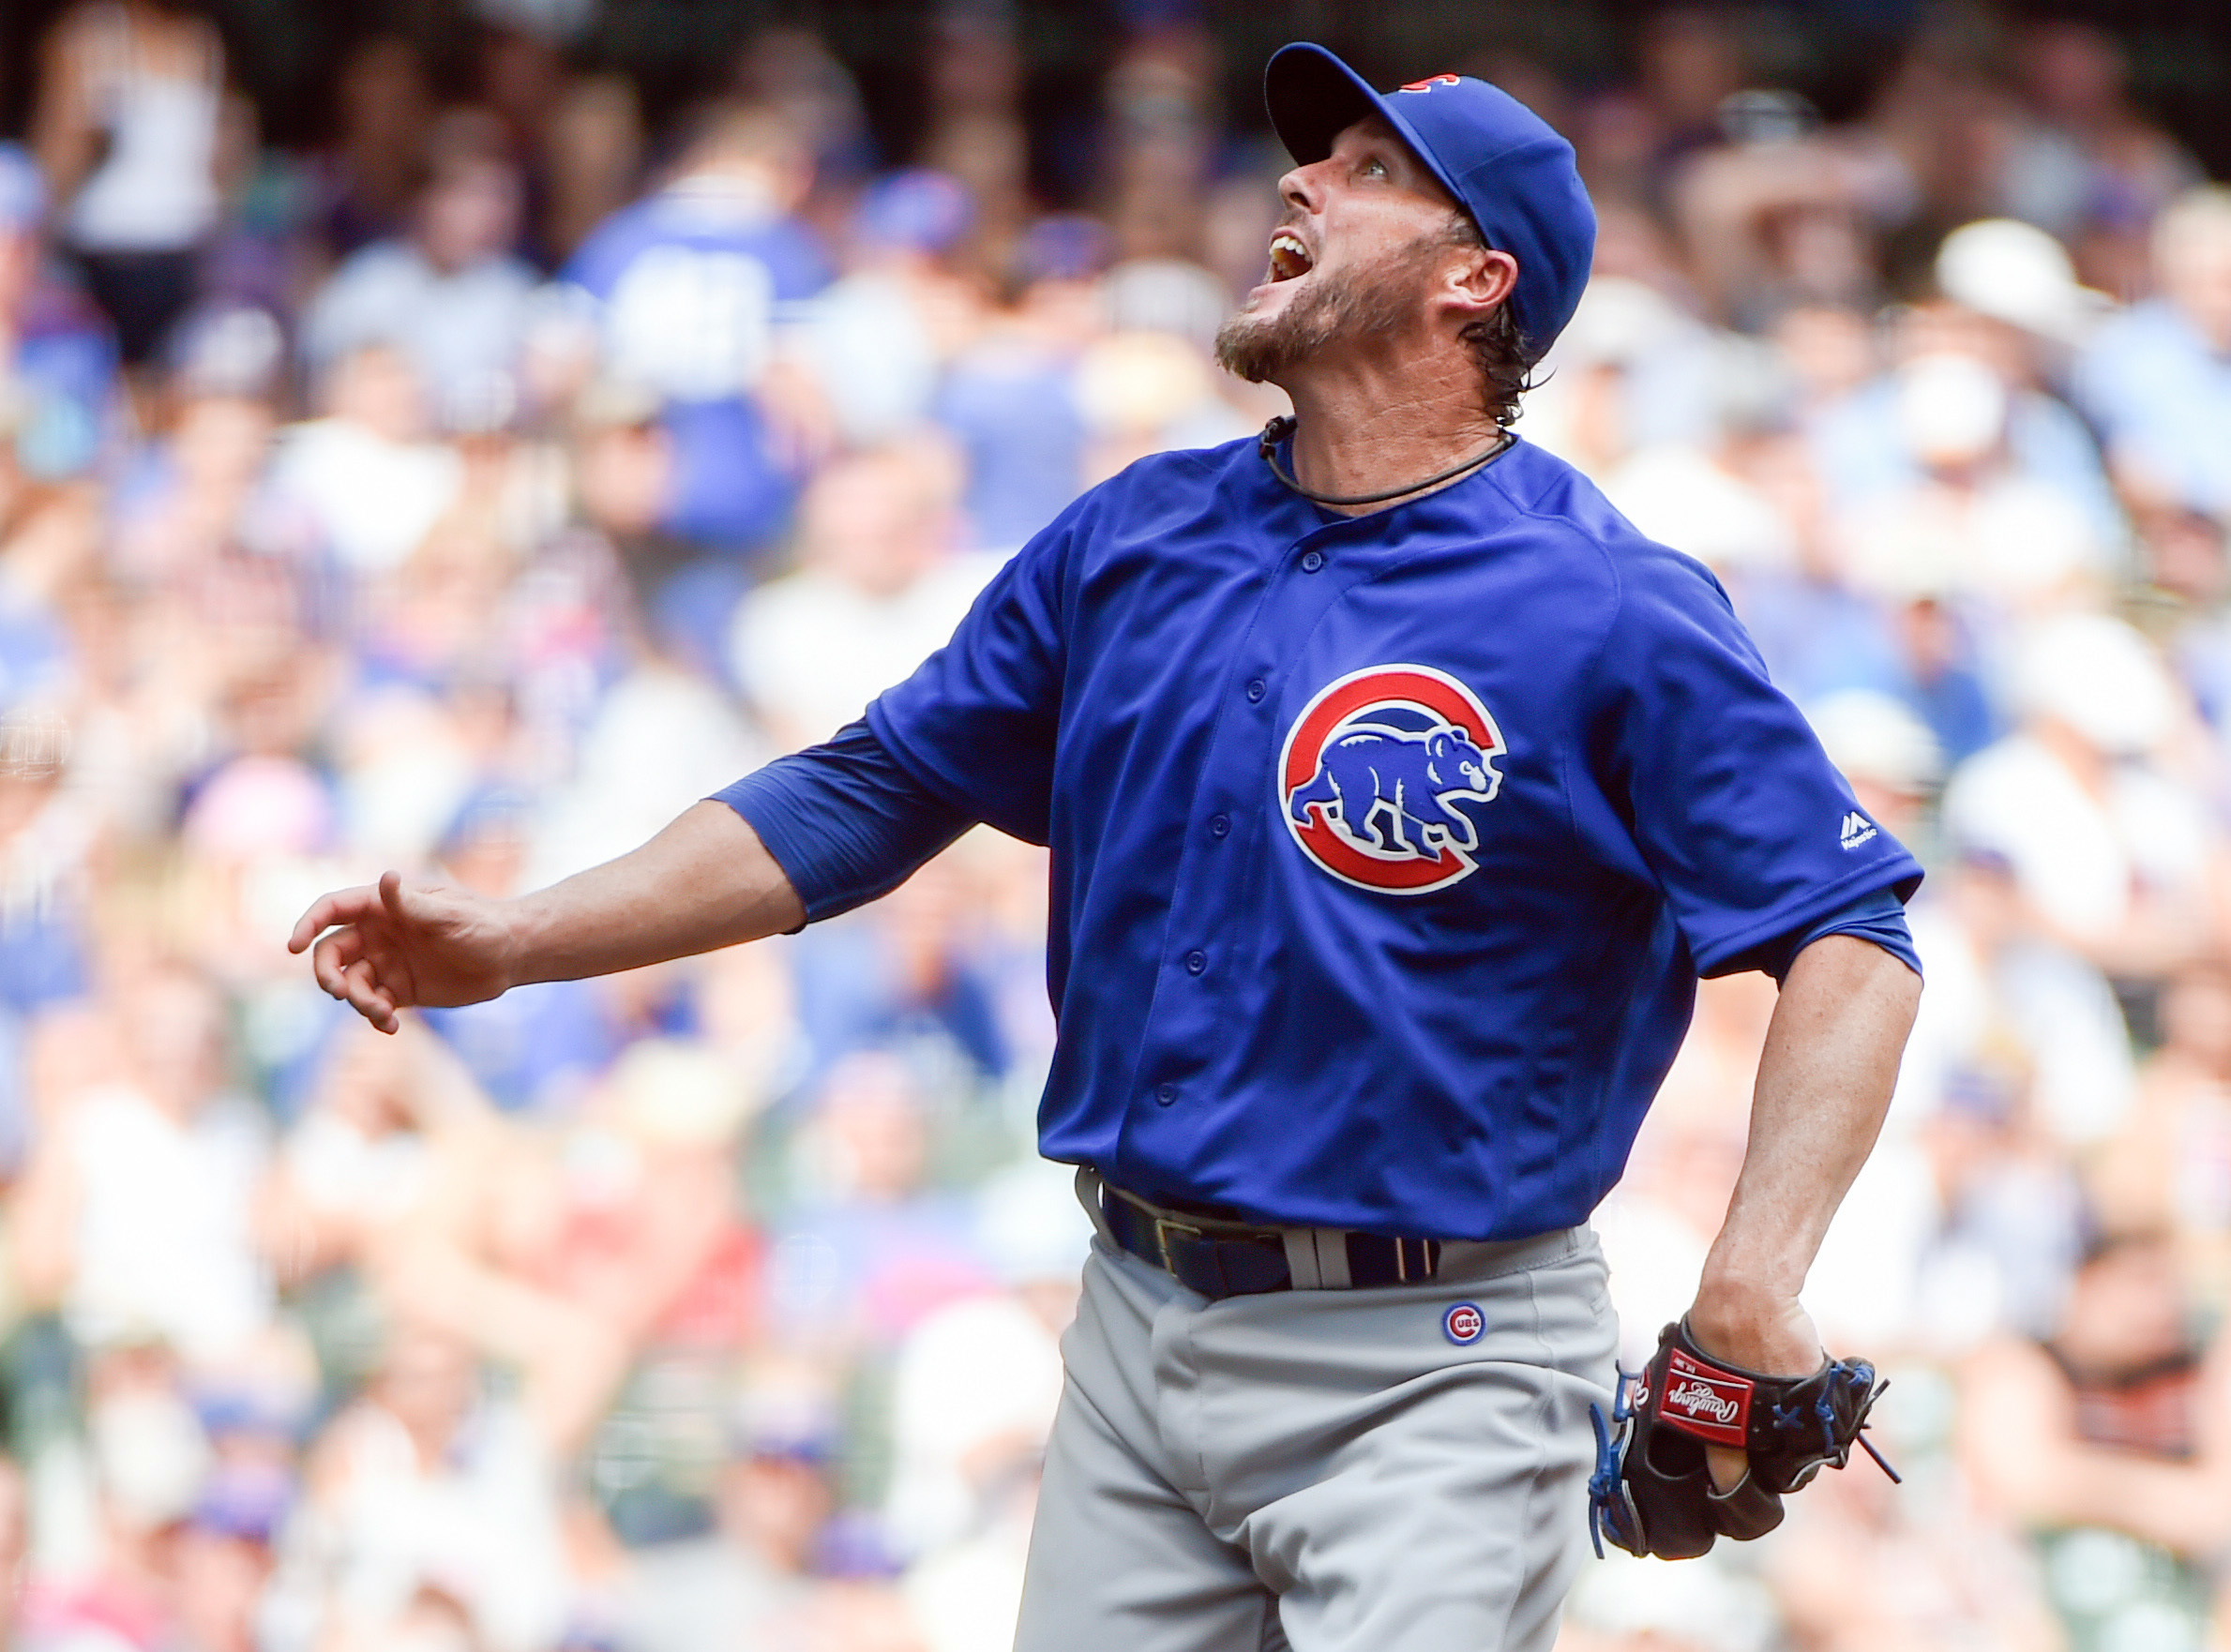 FILE - This July 24, 2016 file photo shows Chicago Cubs pitcher Joe Nathan reacting after a throw during the sixth inning of a baseball game against the Milwaukee Brewers in Milwaukee. The Giants and Nathan agreed Tuesday, Aug. 16, 2016 to a minor league